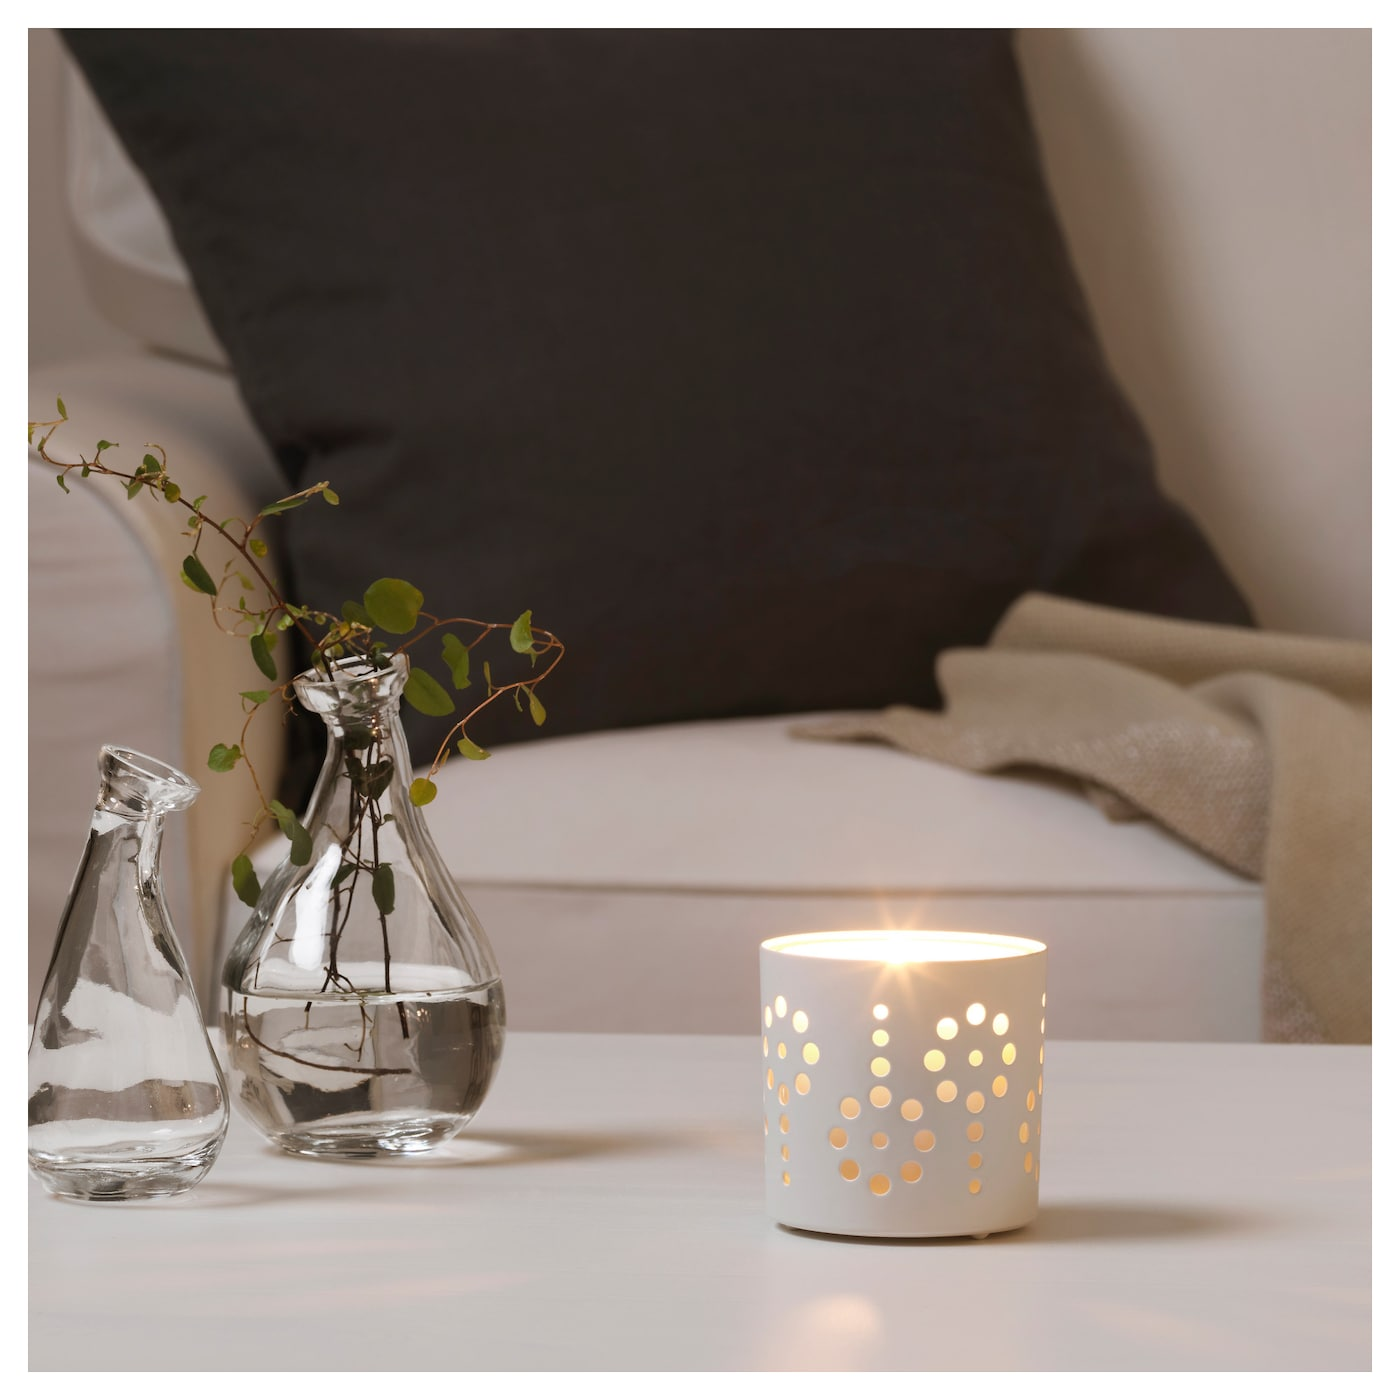 IKEA VACKERT decoration for candle in glass The decoration can also be used with tealights.